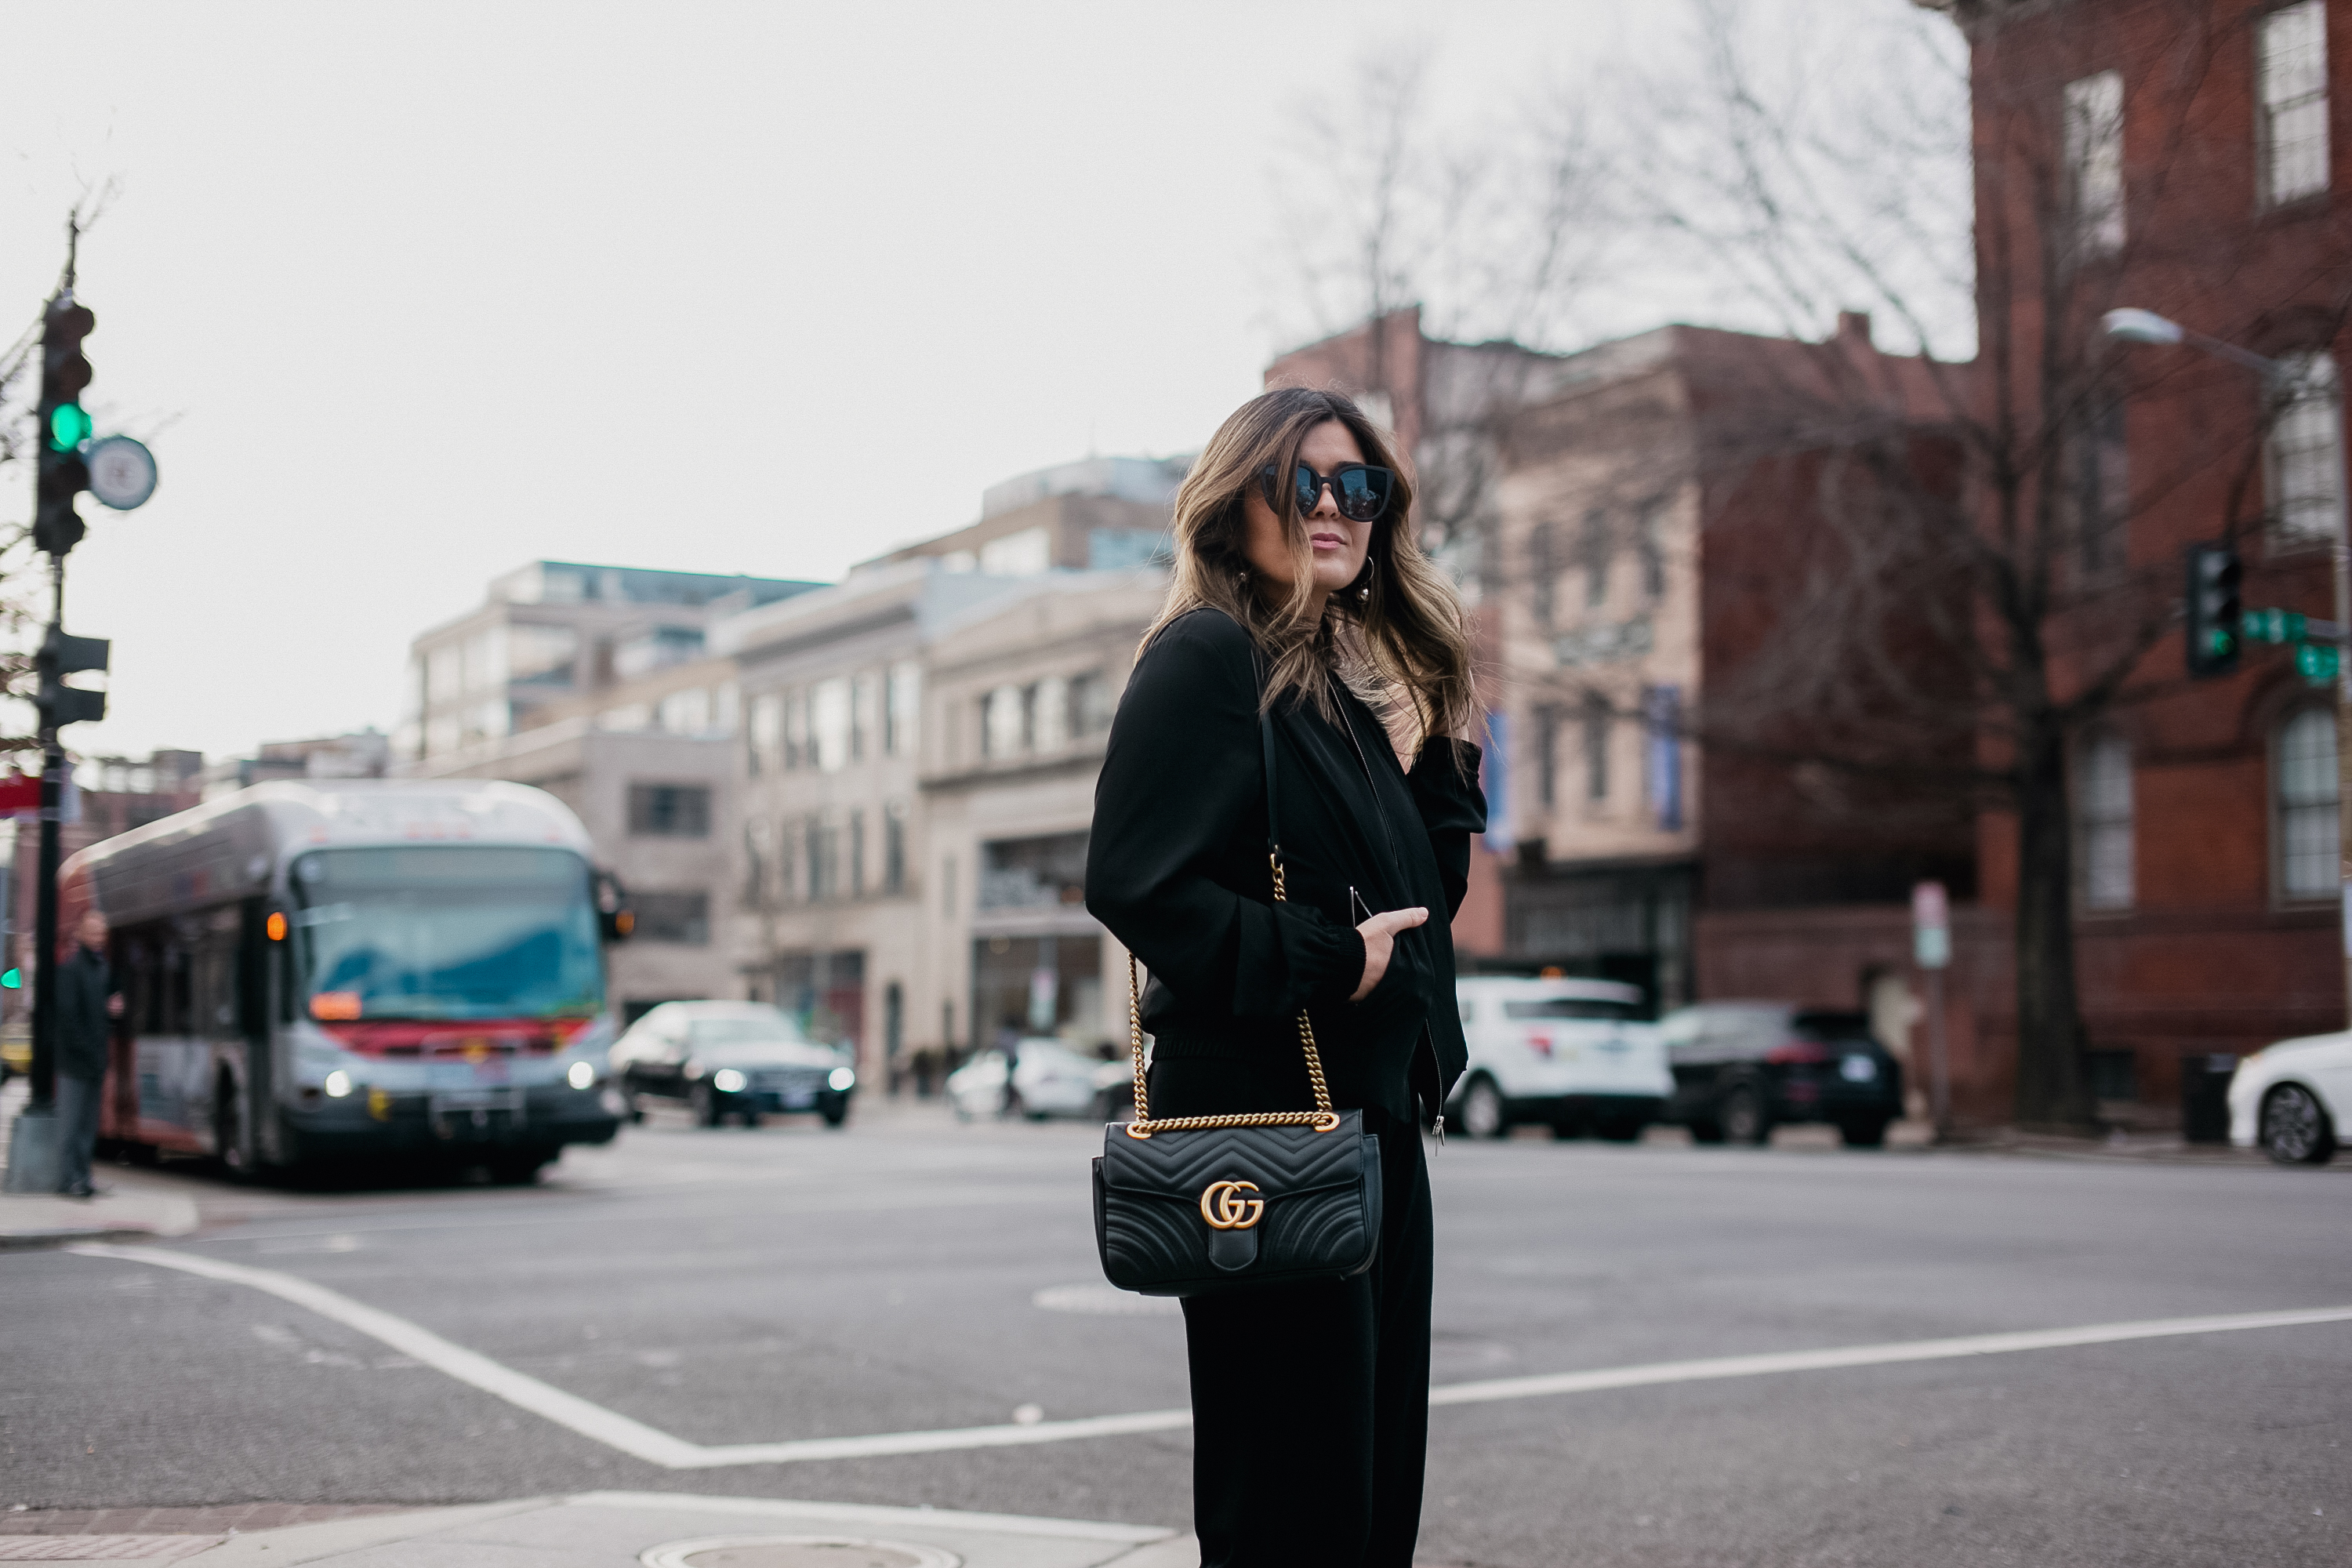 Blogger Sara Azani of Style MBA, a petite Brunette woman, is photographed on the street wearing an all-black outfit featuring Quay Australia black sunglasses, Stuart Weitzman black strappy heels, a black Gucci bag, black cashmere flannel draw-string pants, and a silky black bomber jacket by Lafayette 148.